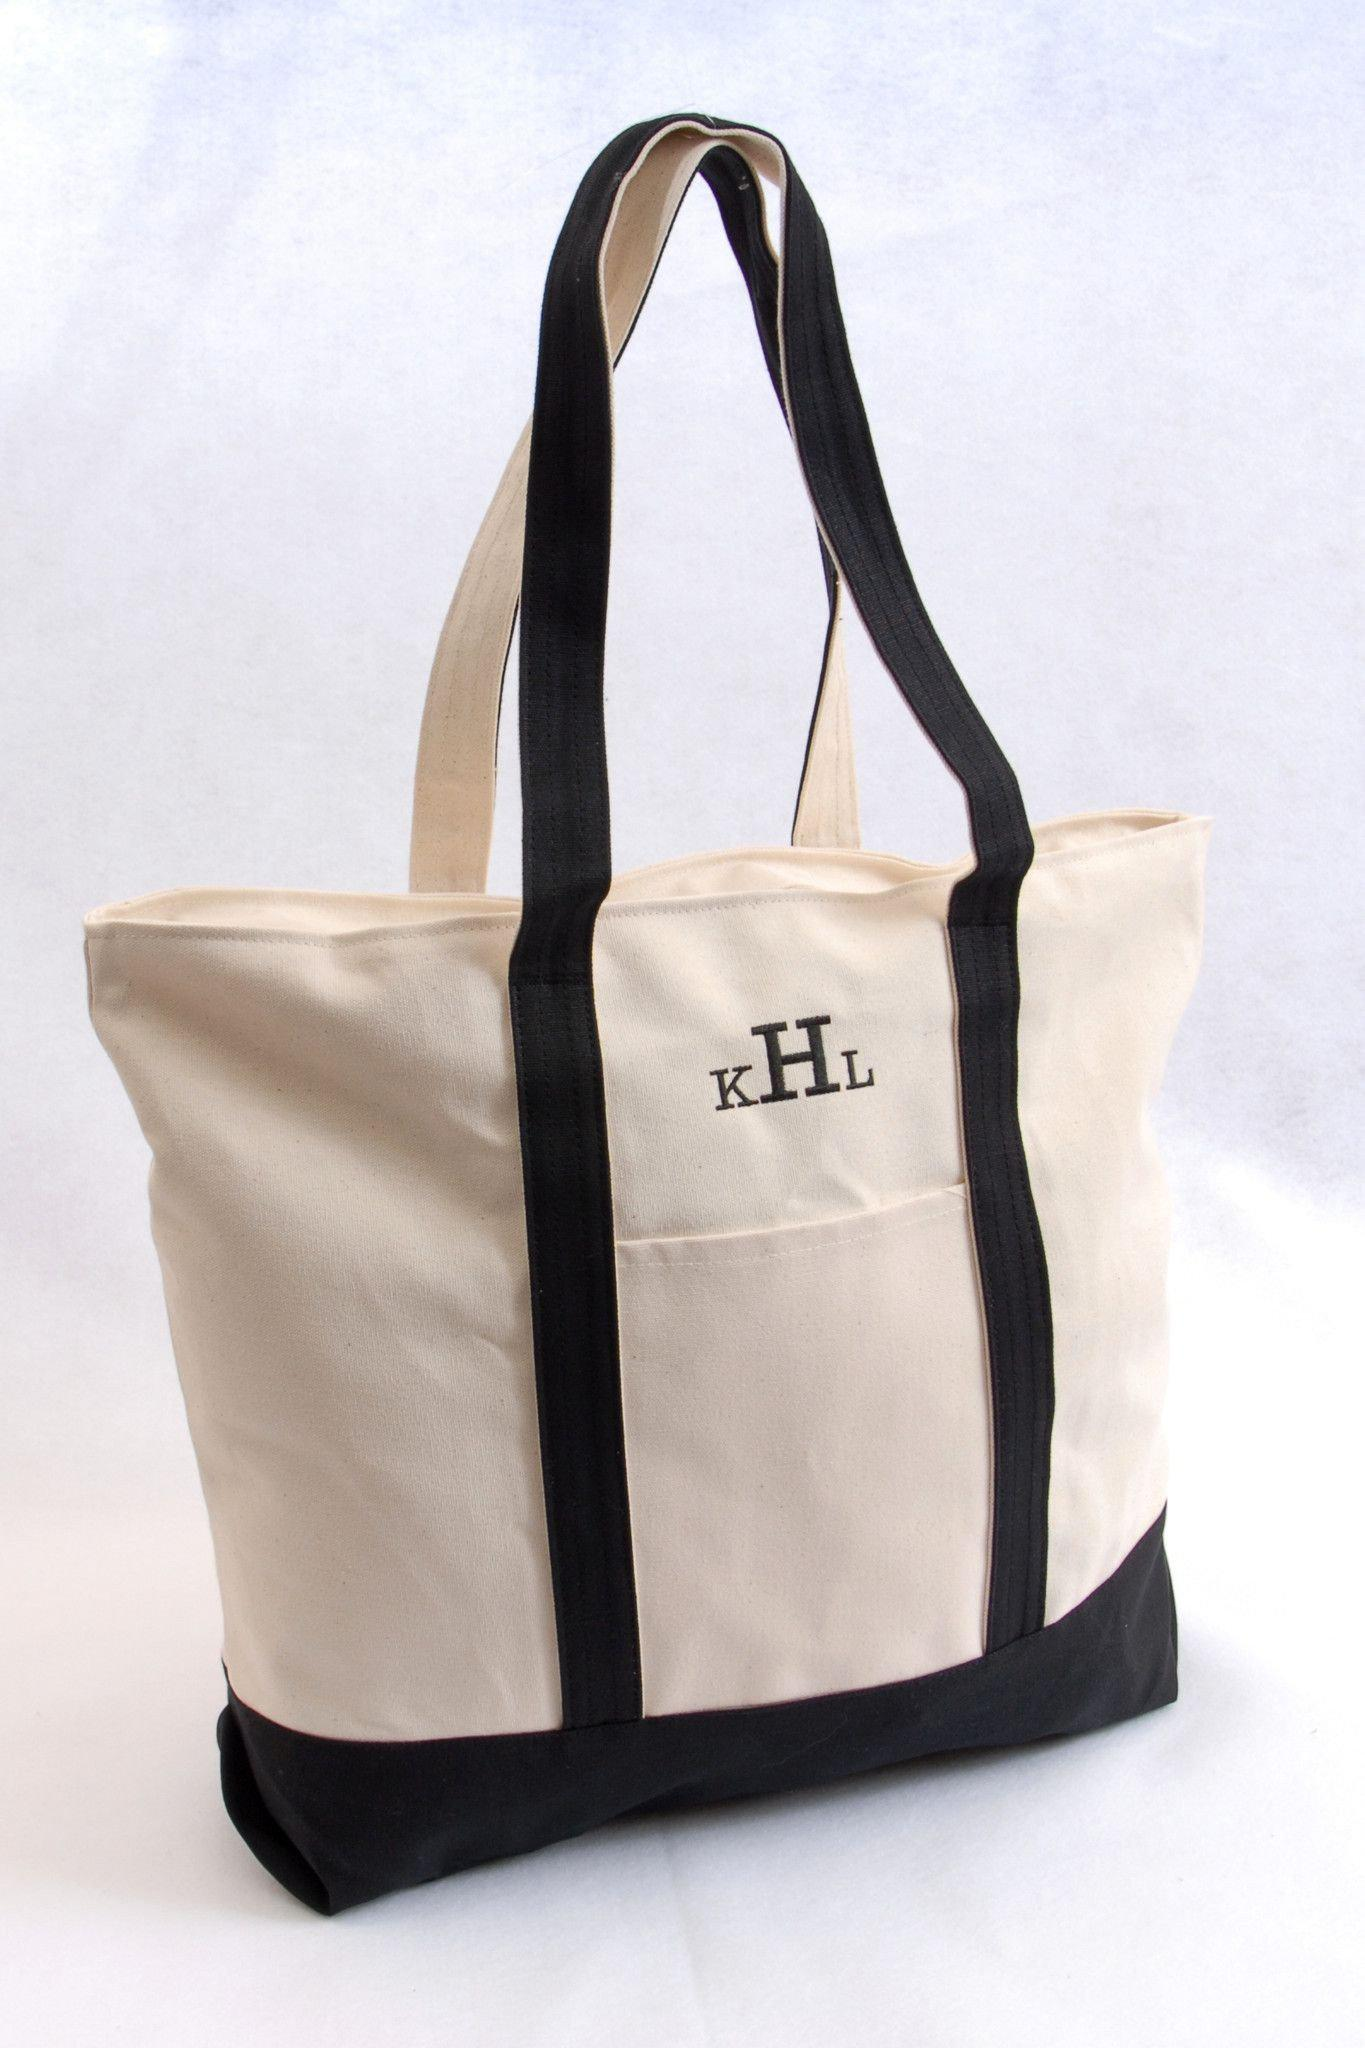 Personalized-Tote-Bags-Beach-Bag-Gifts-for-Her